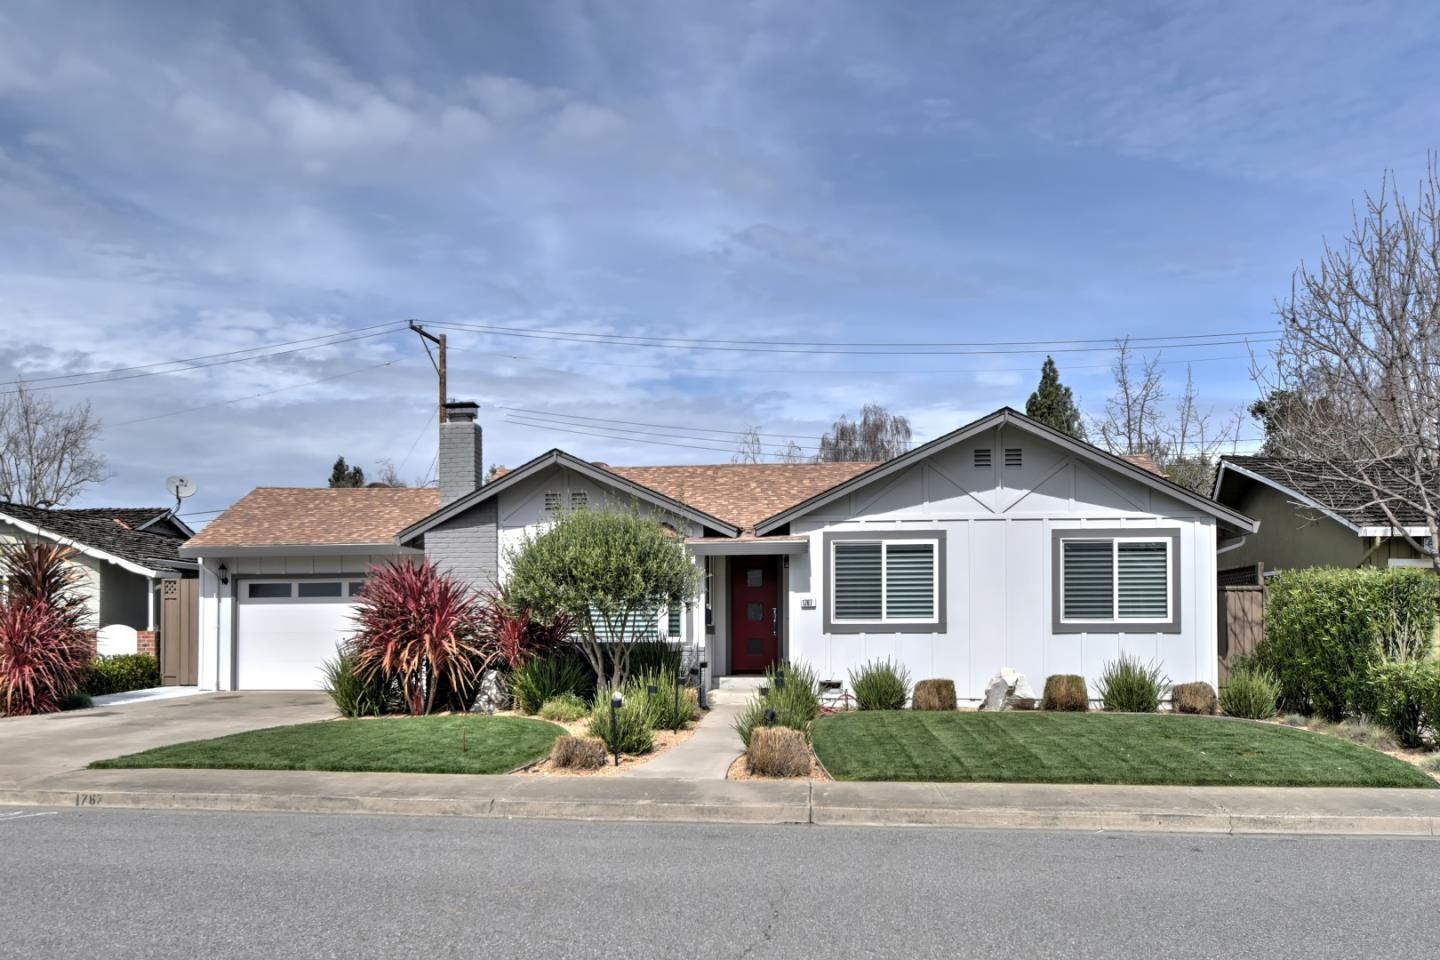 Other for Sale at 1767 Cherry Grove Dr SAN JOSE, CALIFORNIA 95125